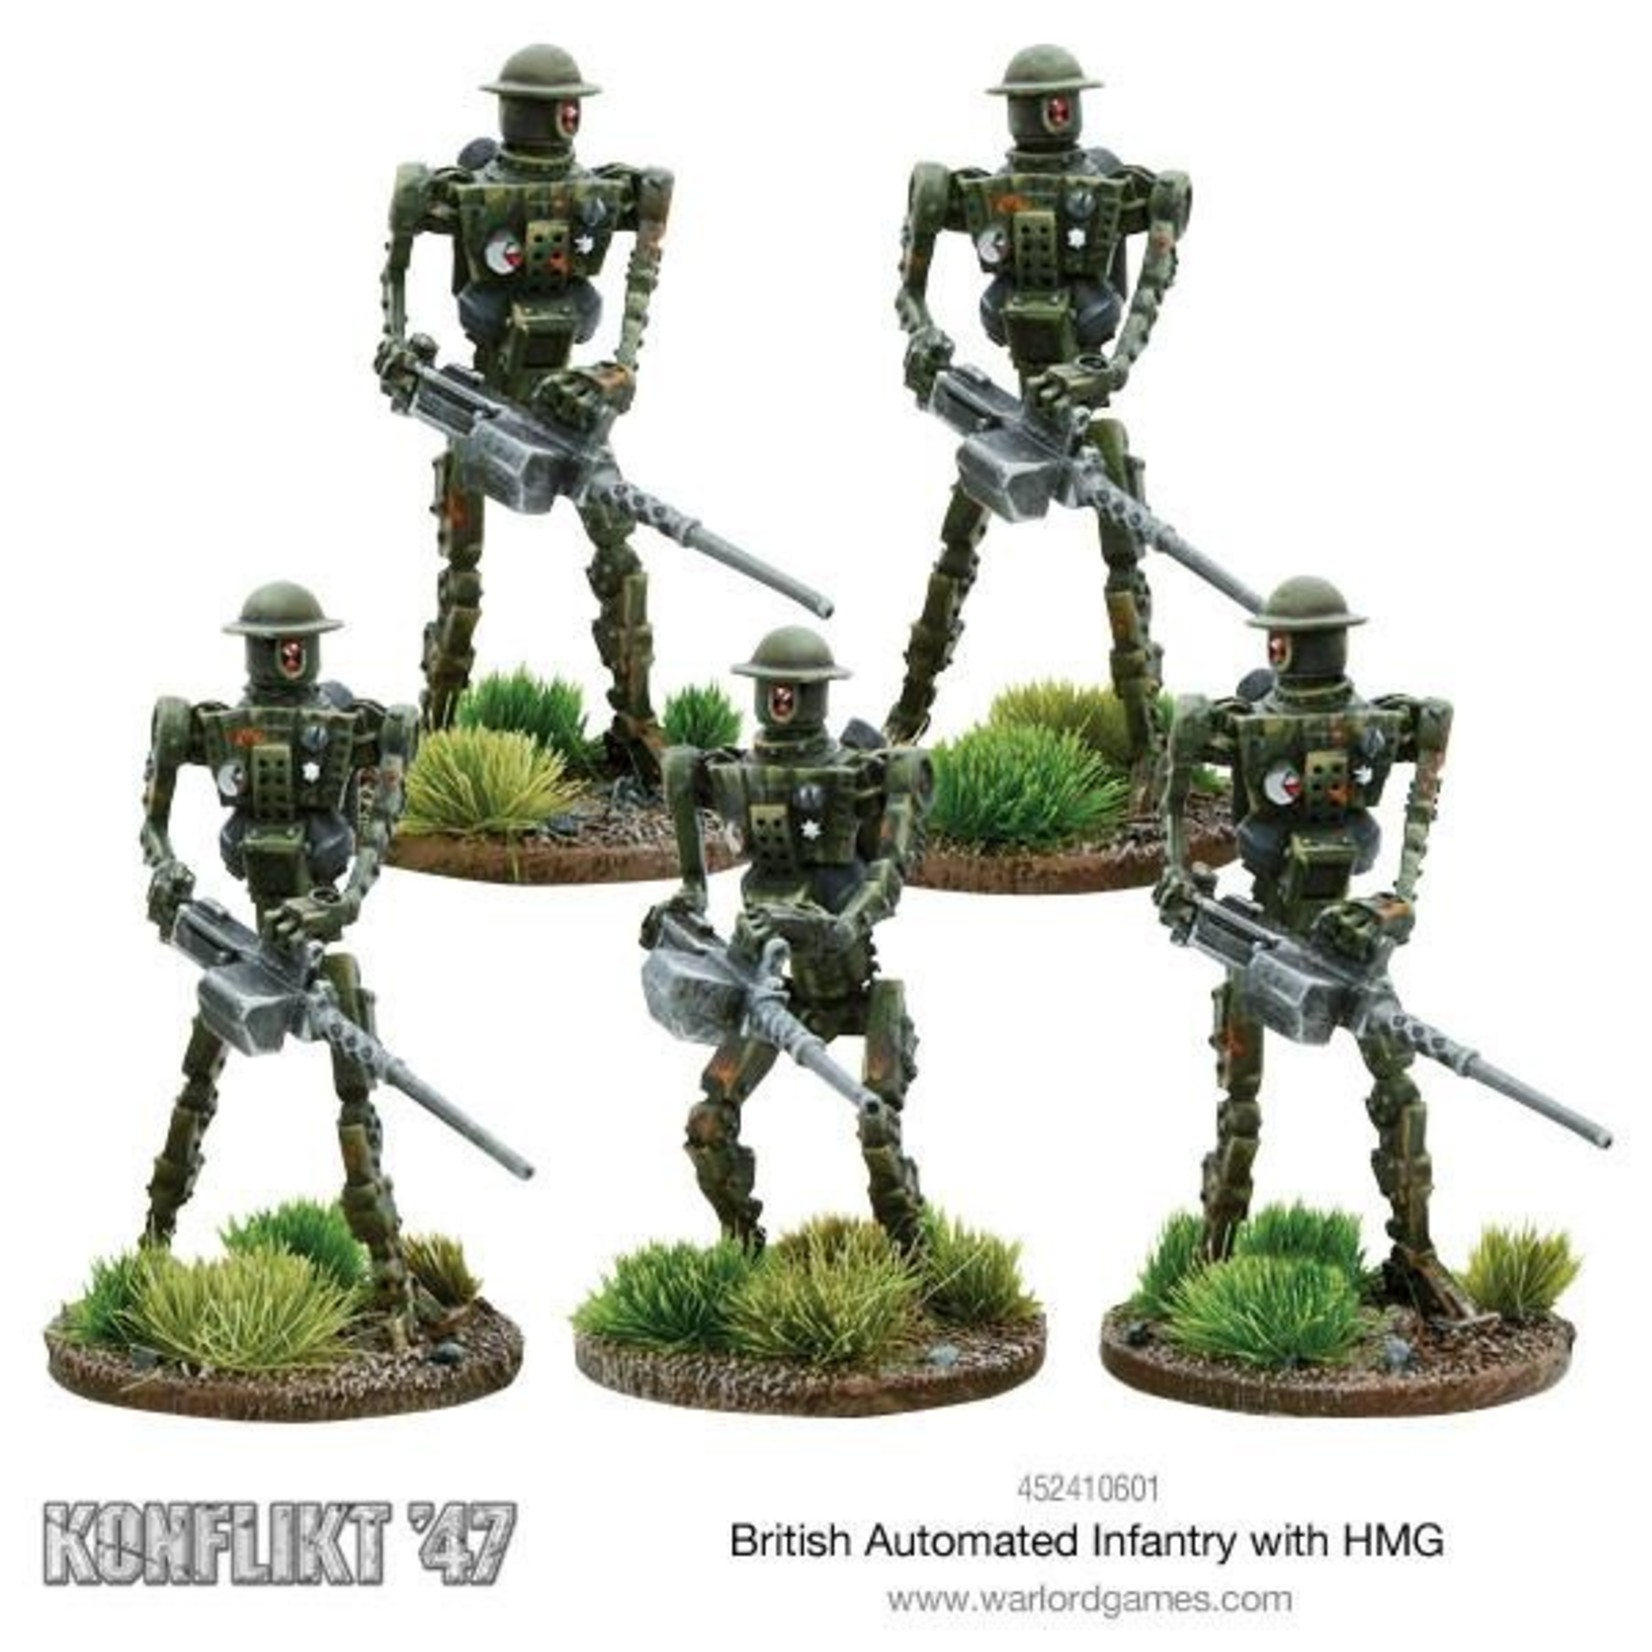 Warlord Games British Automated Infantry with HMG box set